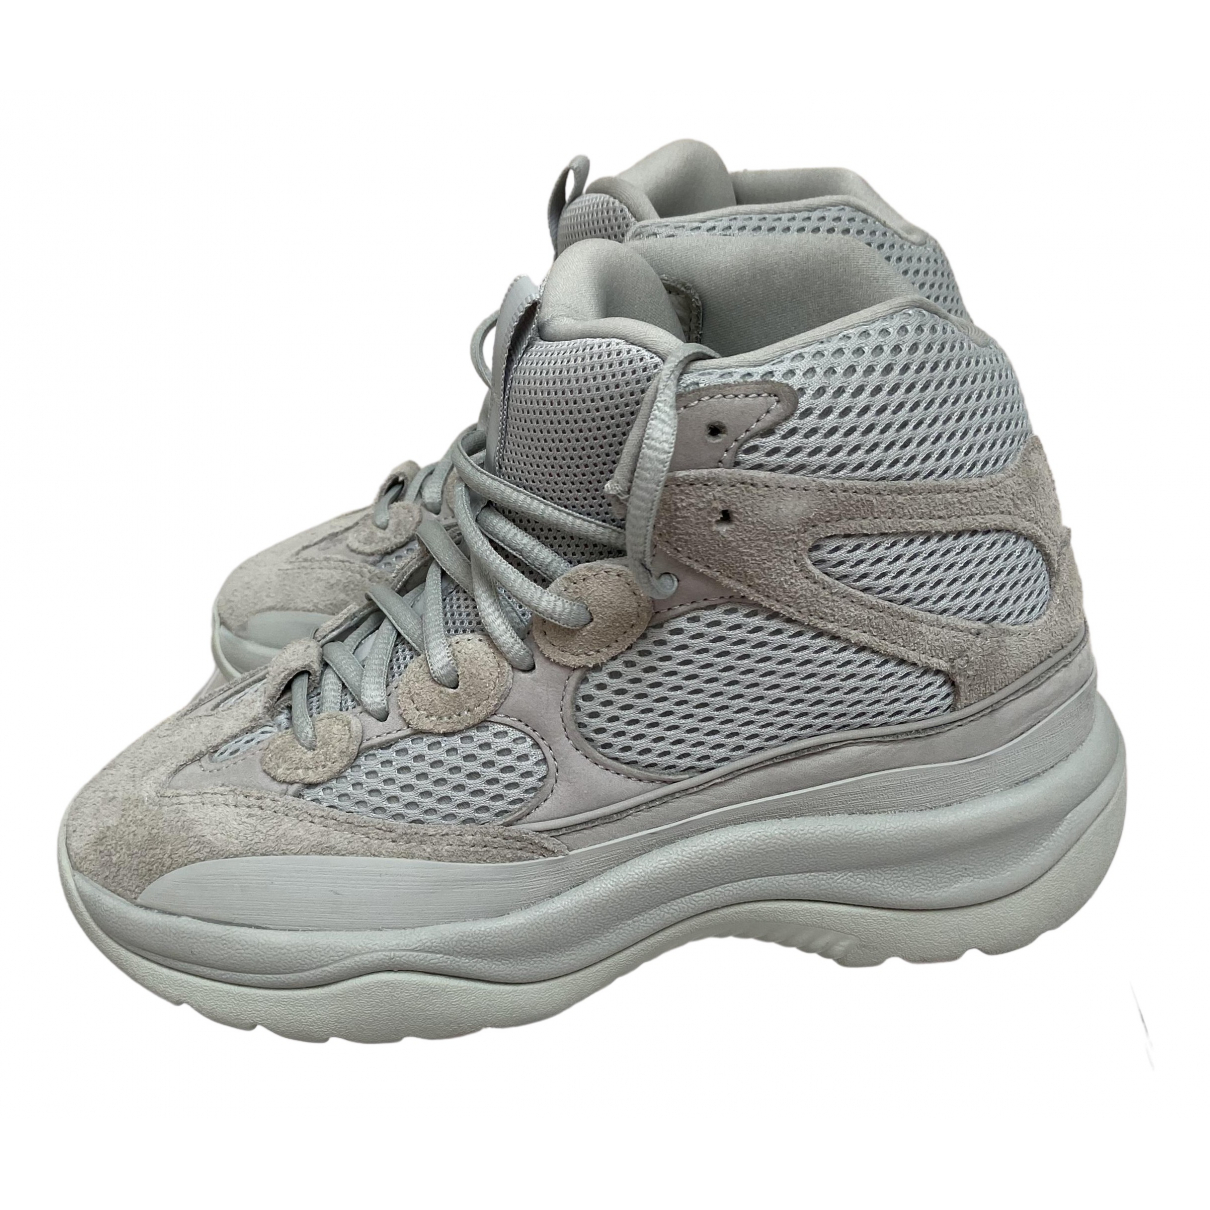 Yeezy X Adidas \N Grey Suede Boots for Women 5 UK